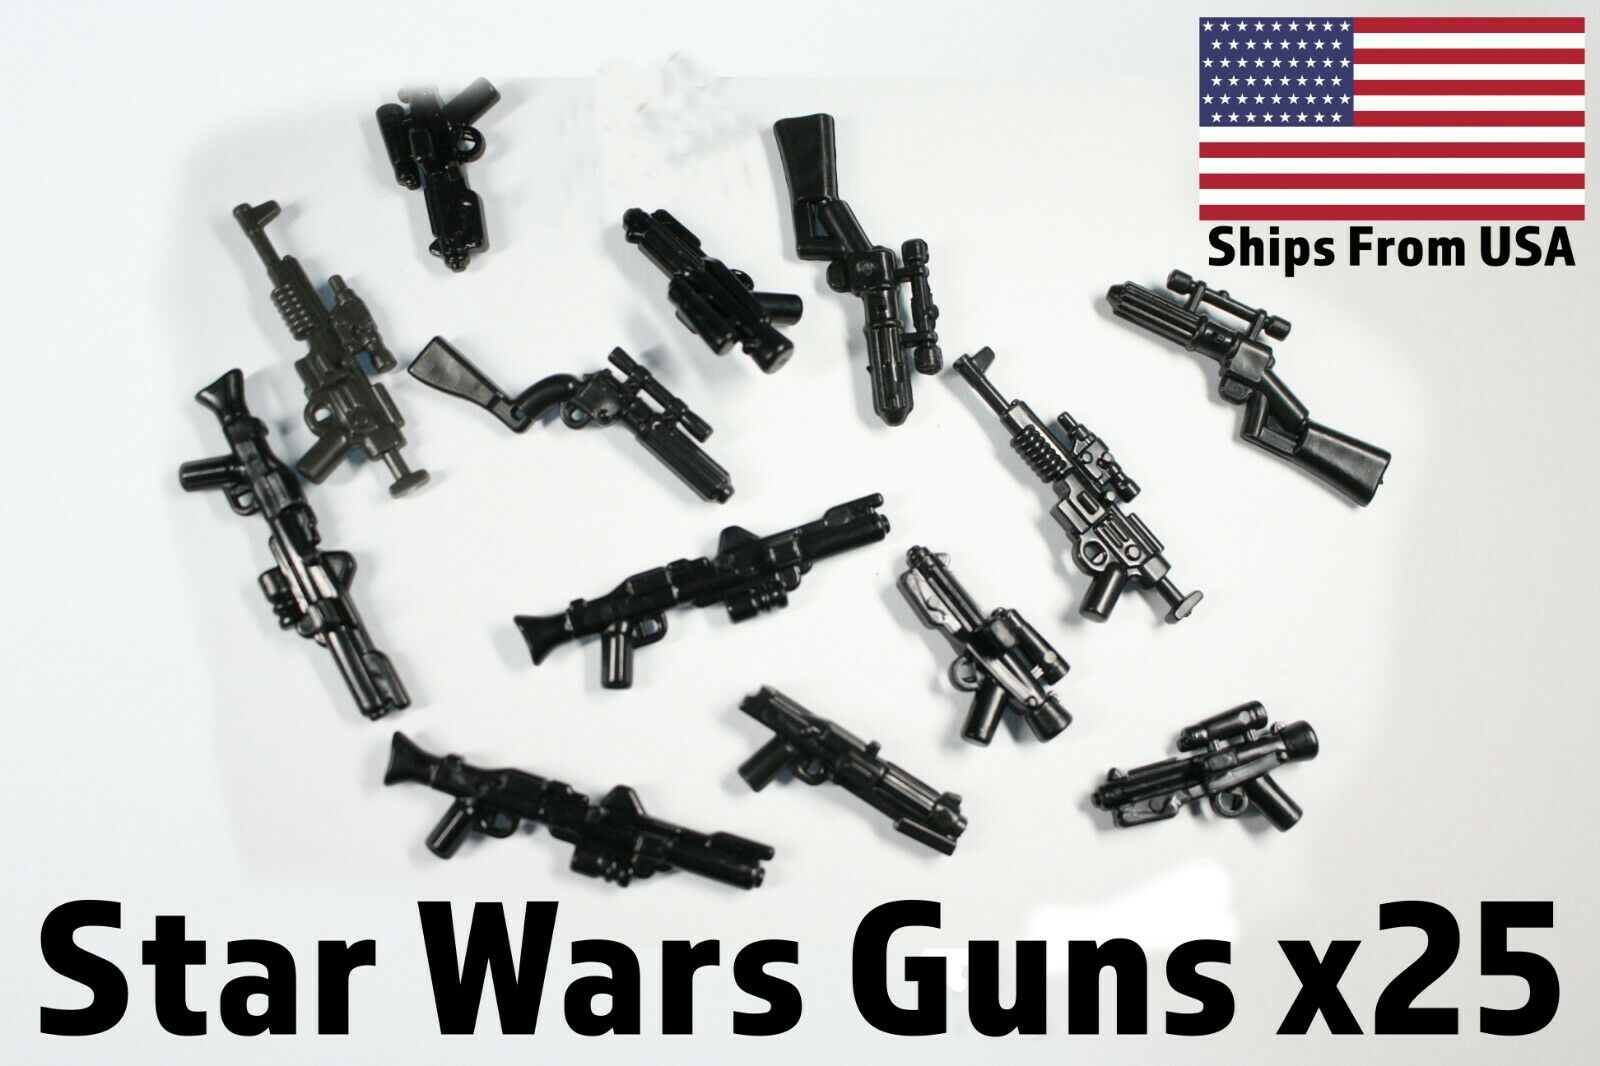 LEGO Star Wars Lot of 25 Long Rifle Blasters Guns Weapons Accessories